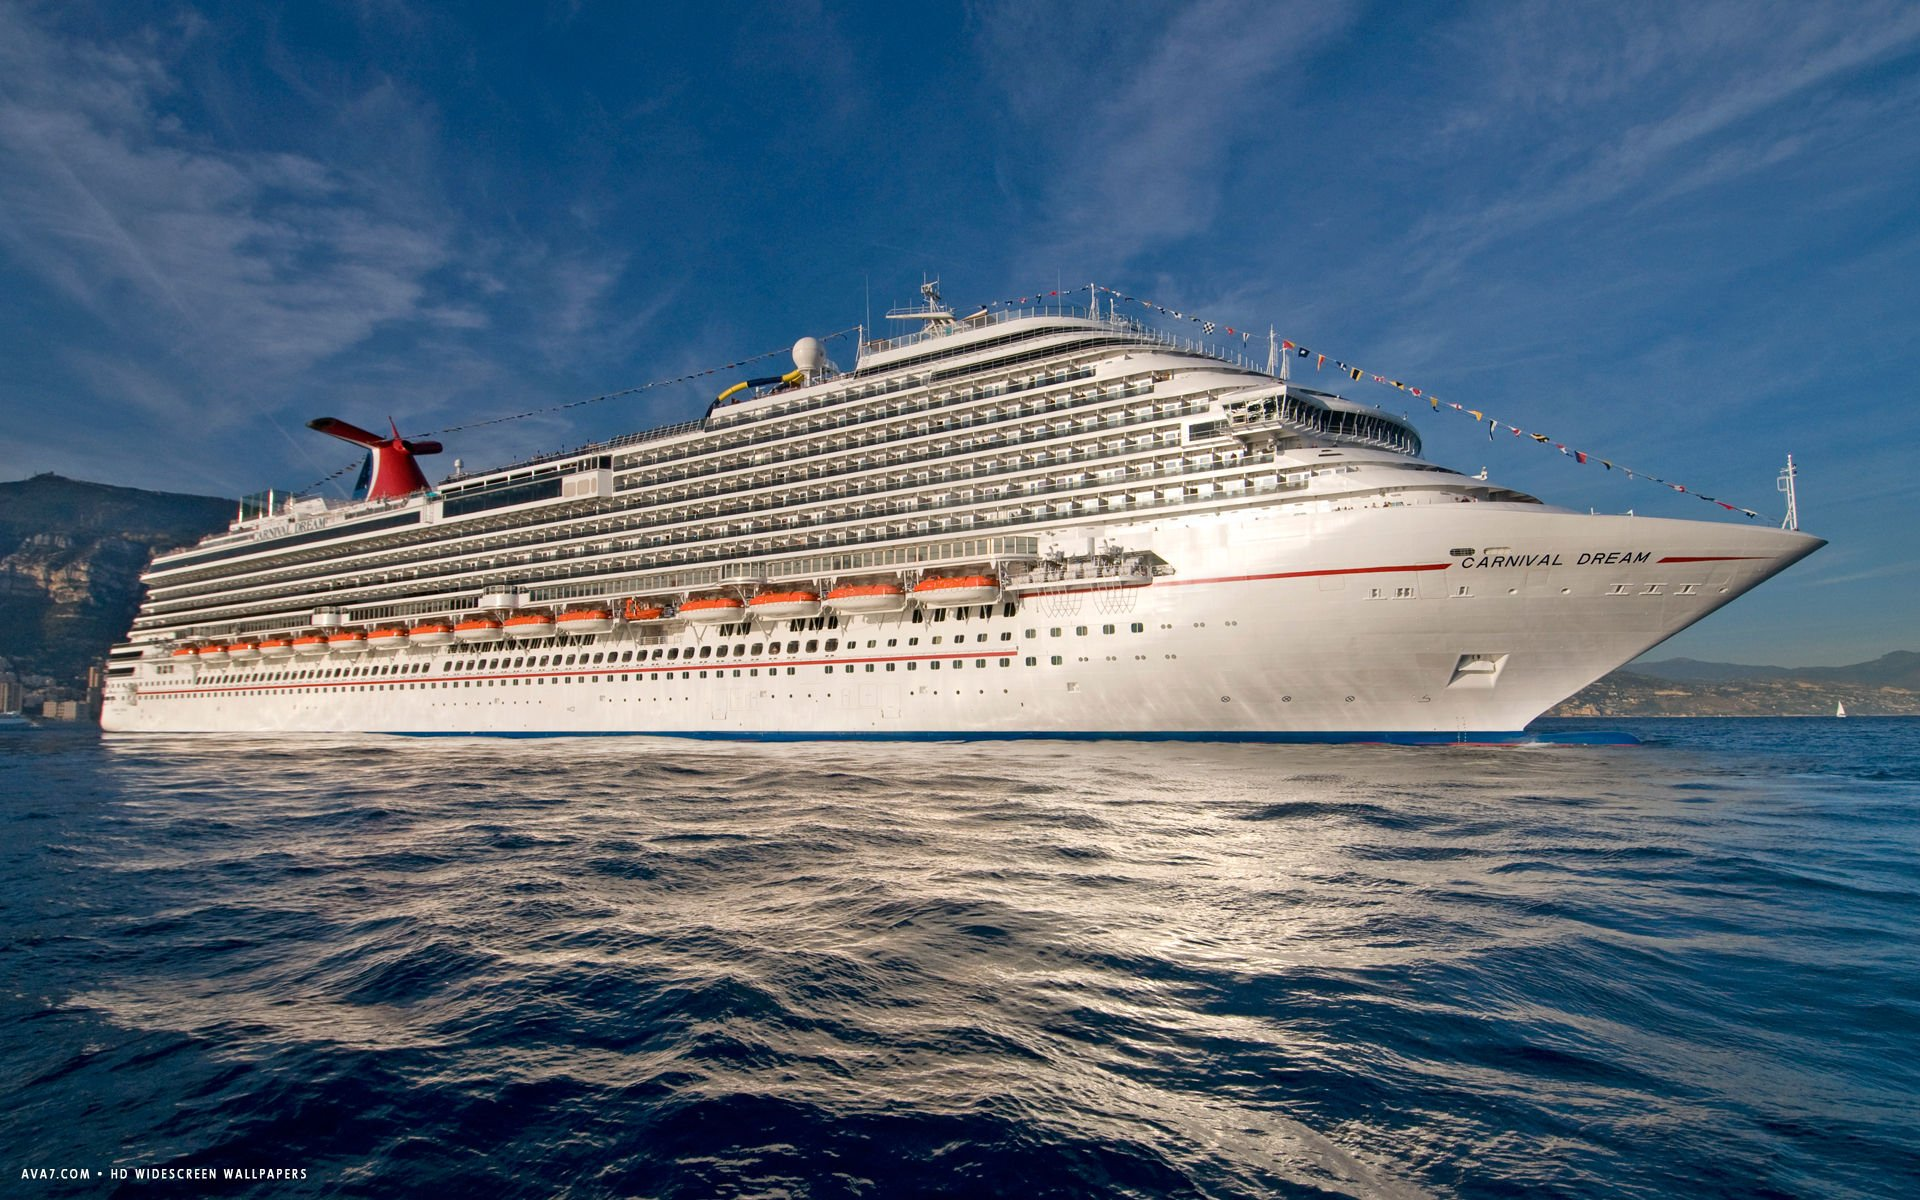 carnival dream cruise ship hd widescreen wallpaper cruise ships 1920x1200